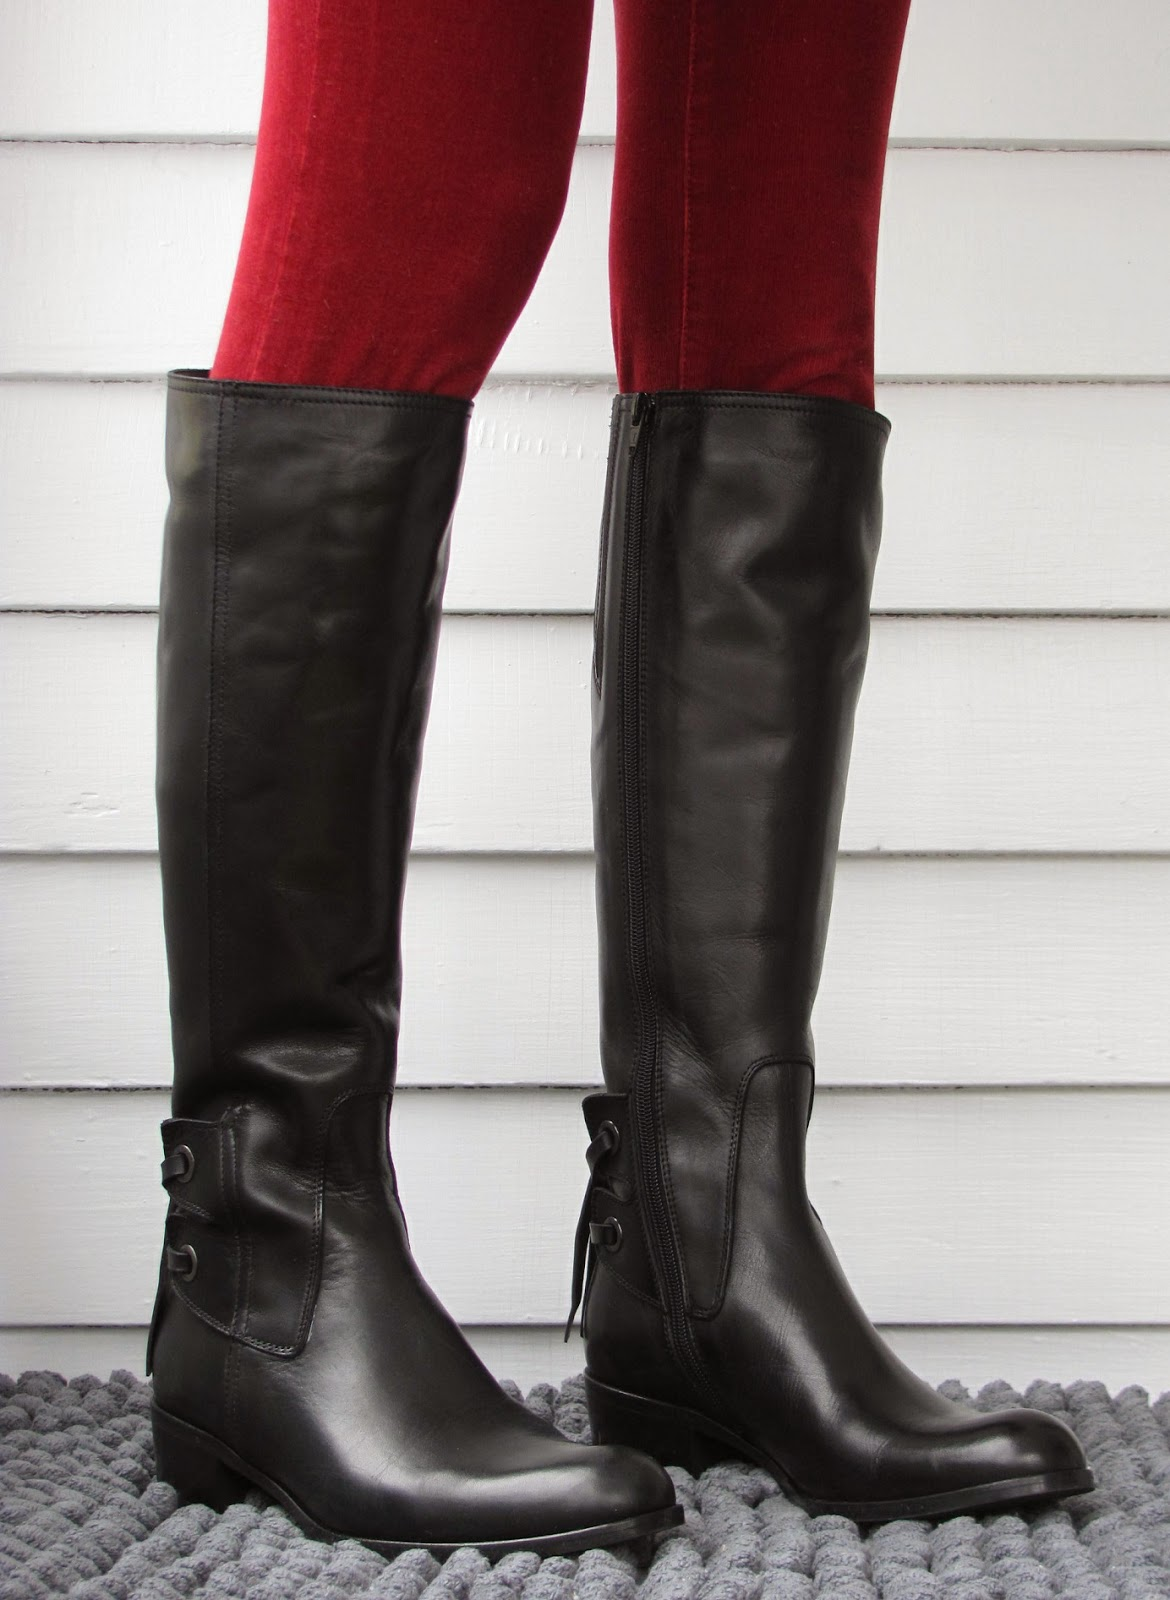 f58ff06f9cf Howdy Slim! Riding Boots for Thin Calves: Which matters more for ...